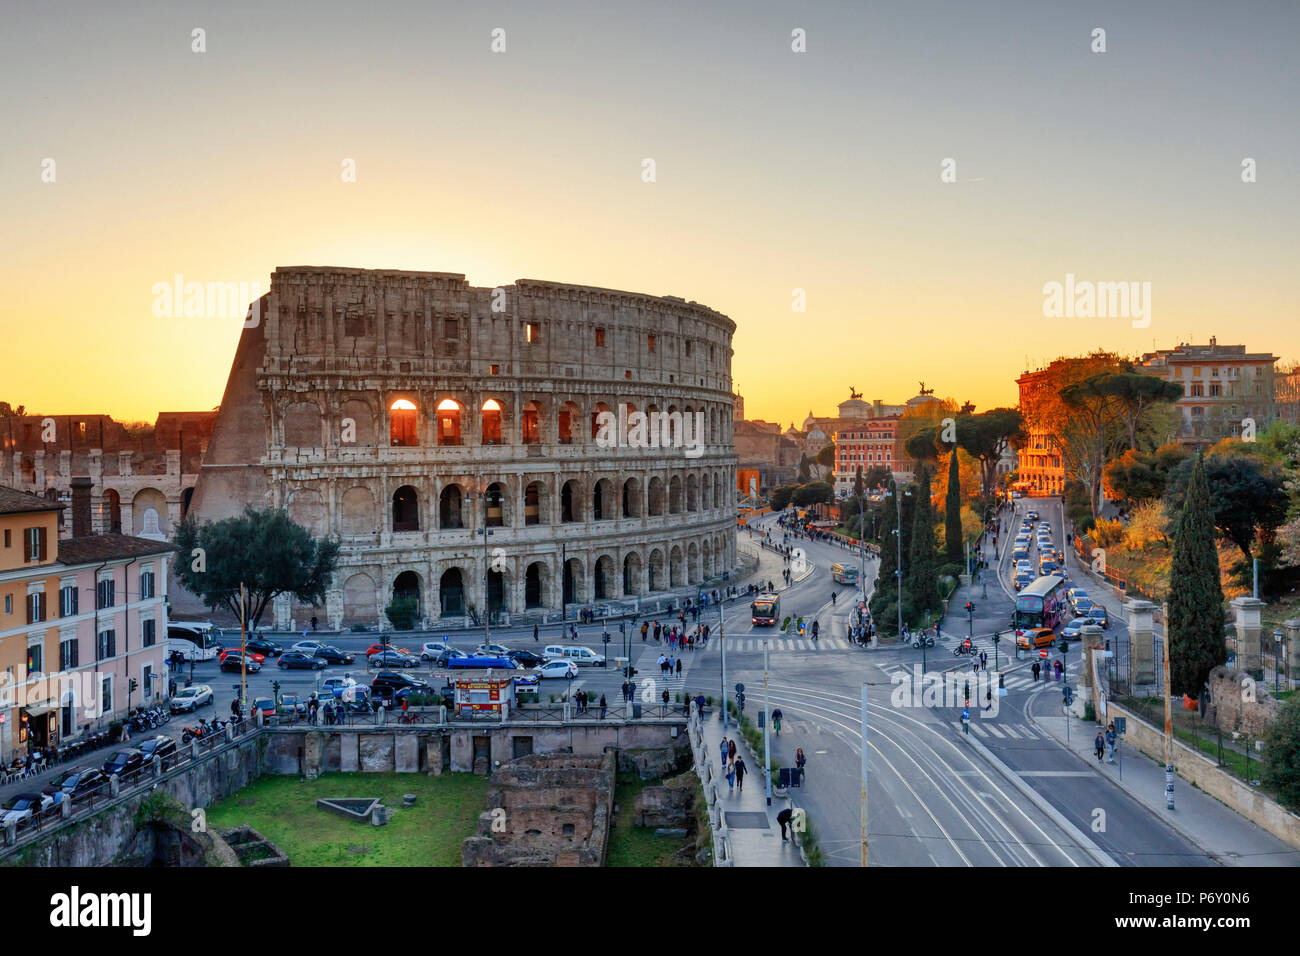 Italy, Rome, Colosseum and Roman Forum at sunset - Stock Image